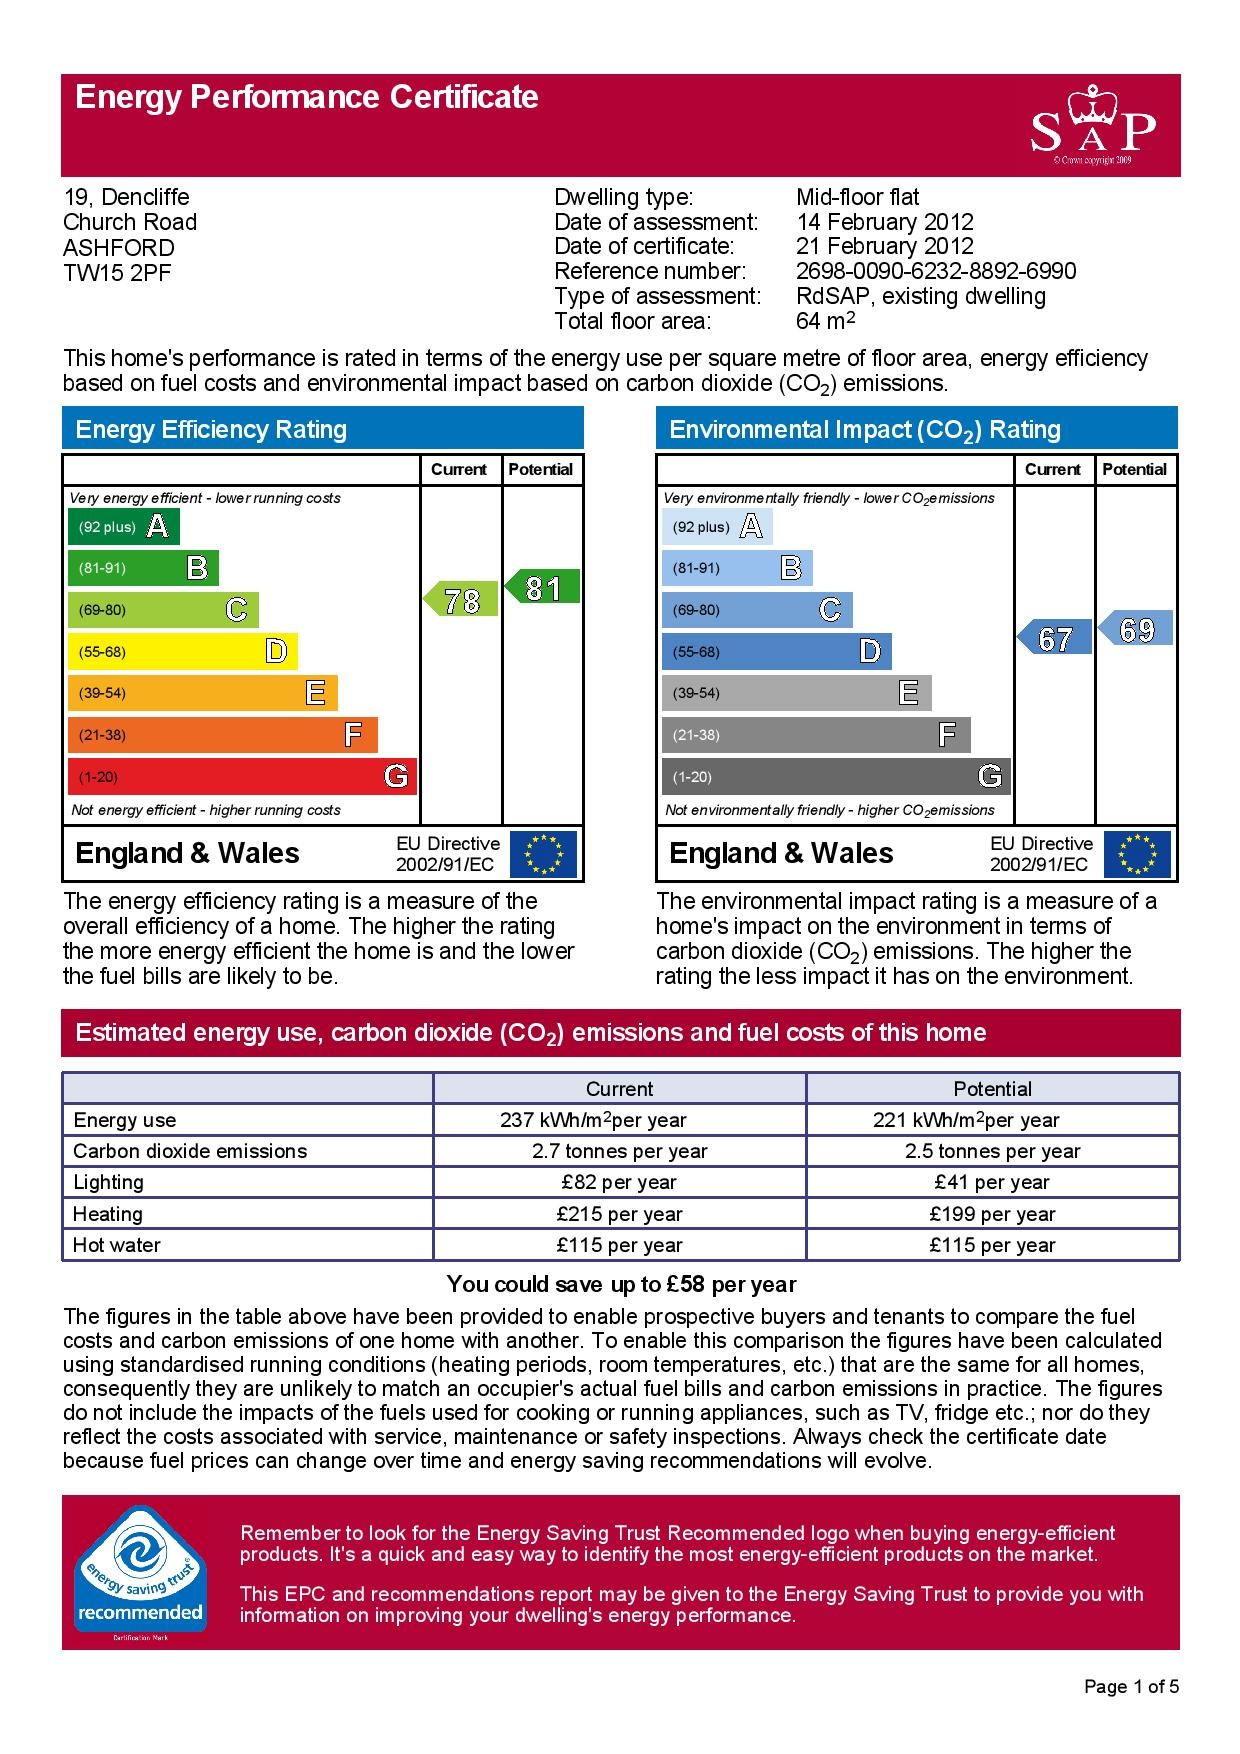 EPC Graph for 19 Dencliffe, Church Road, Ashford, Middlesex TW15 2PF